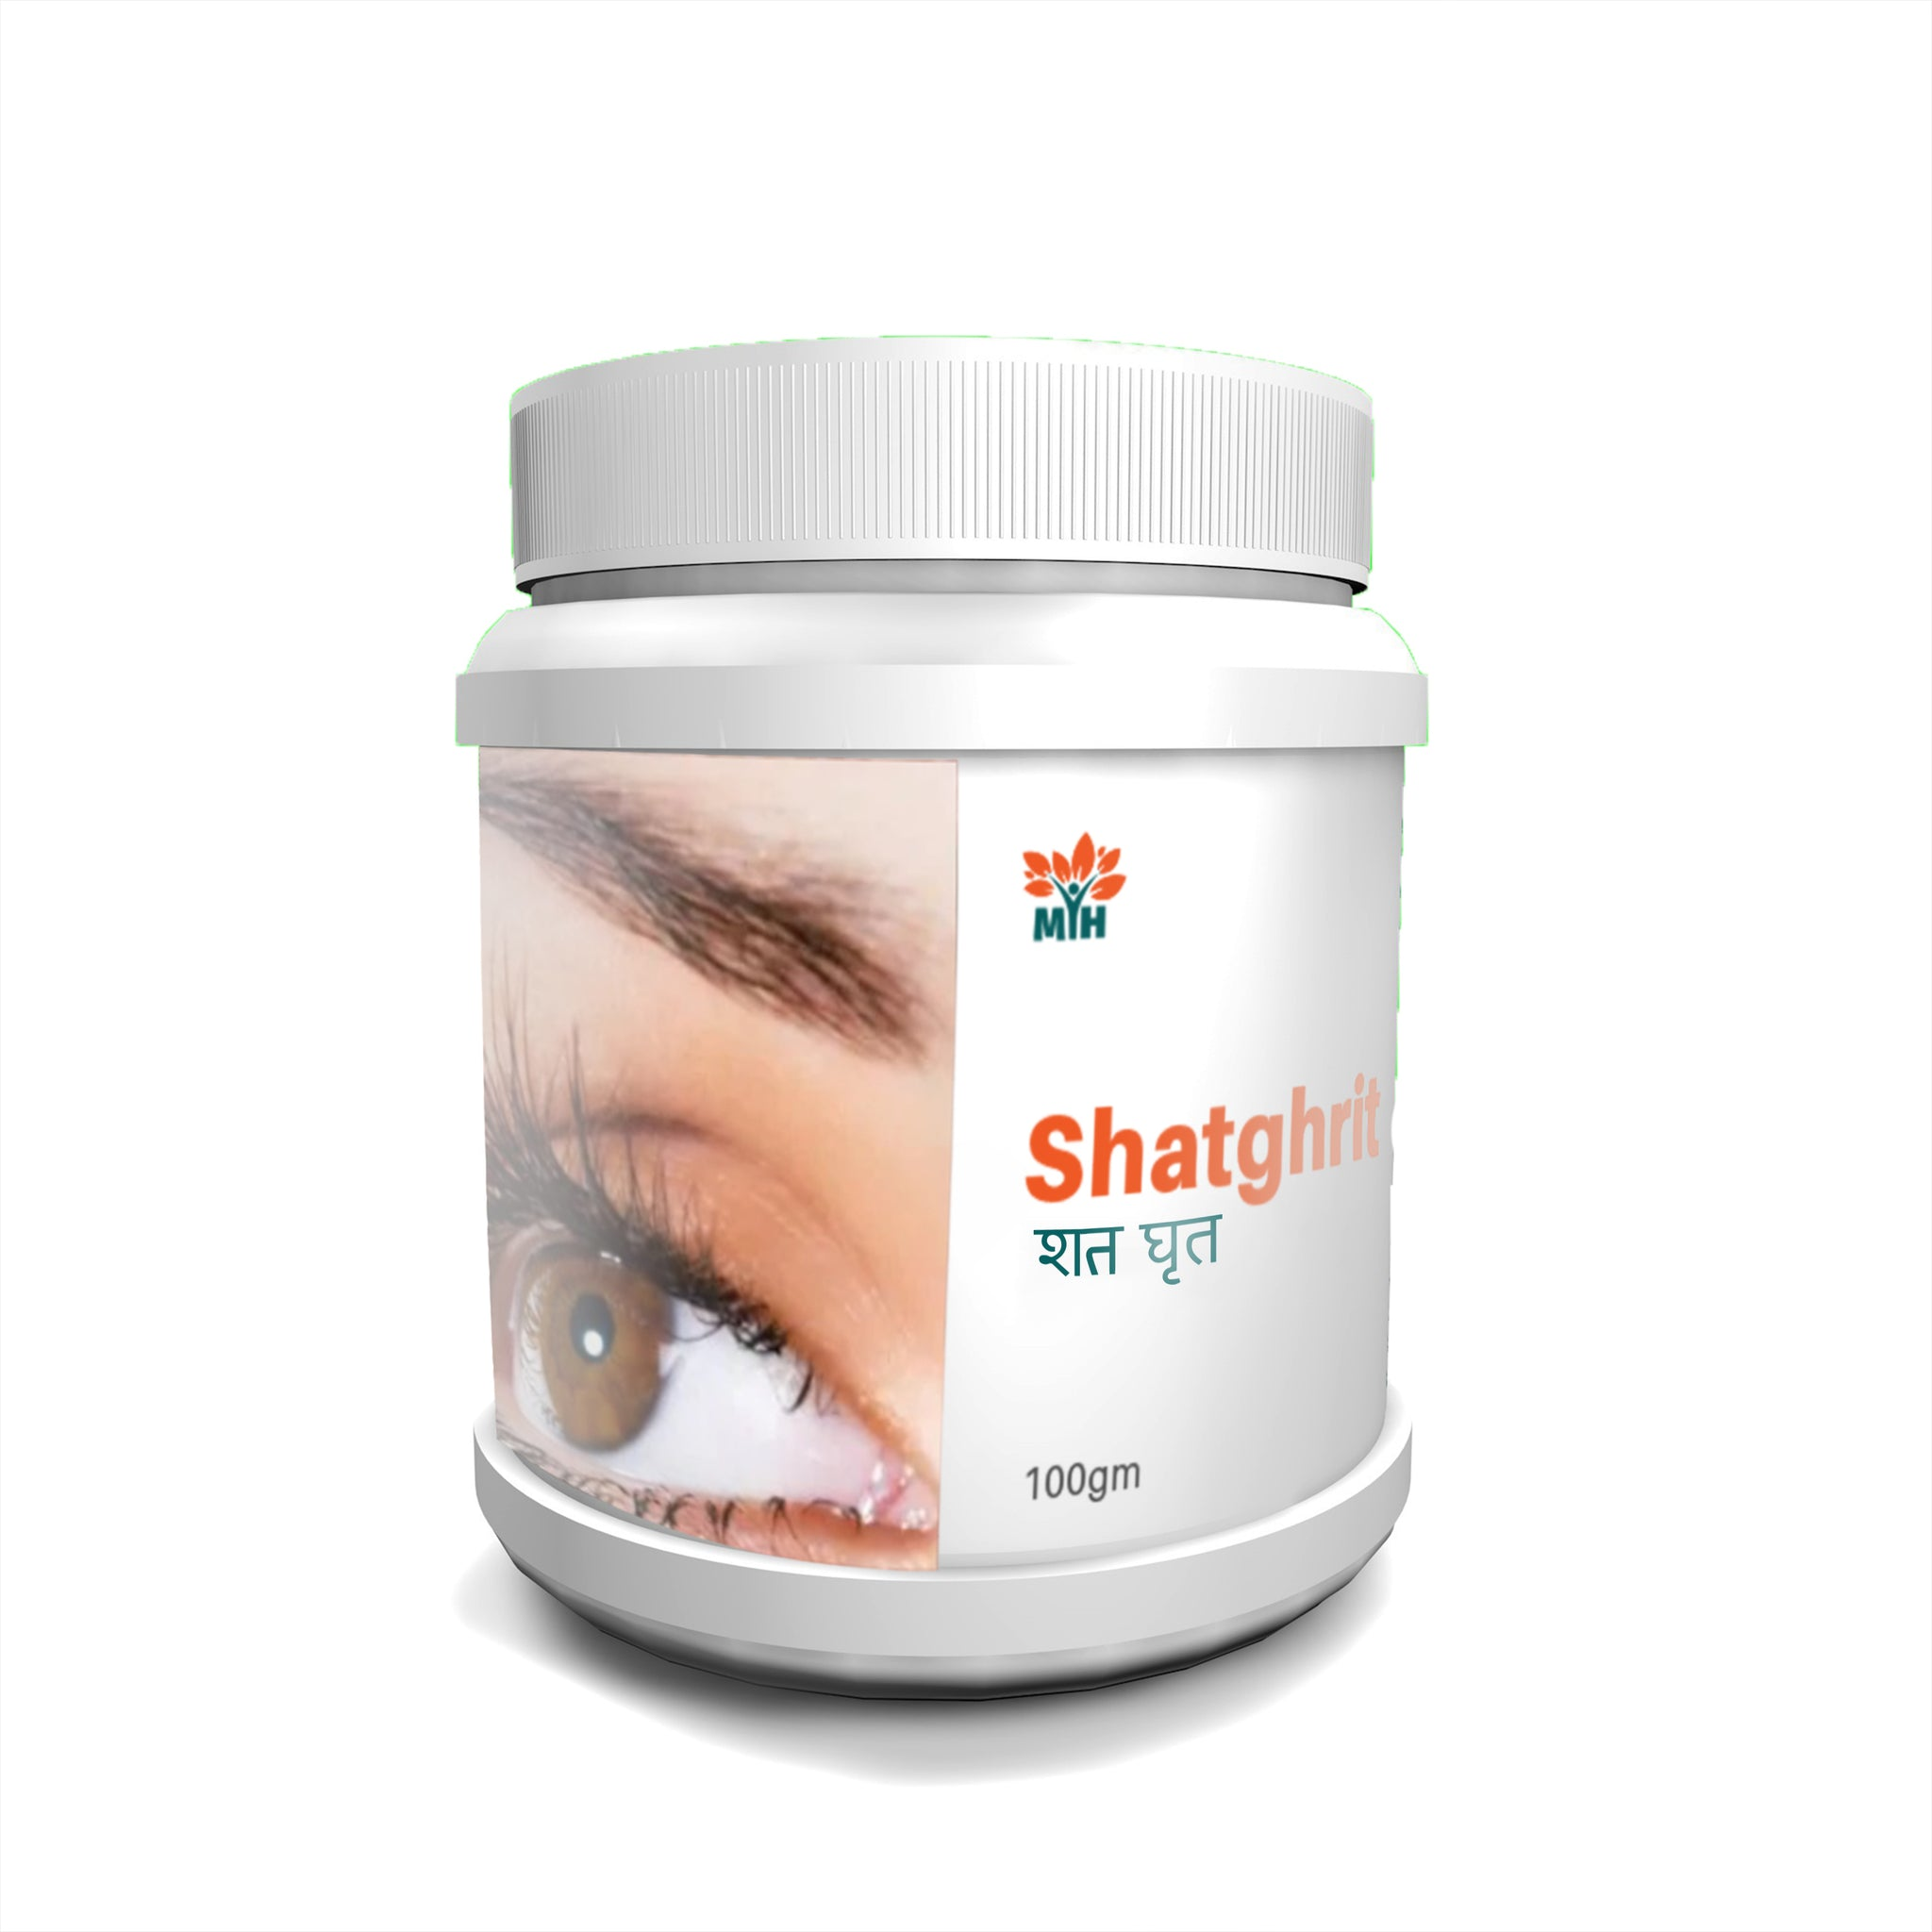 Mansar Herbals ShatGhrita is a wonderful tonic for eyes which helps to improve vision in various eye ailments such as refractive disorders, Night blinders, cataract, glaucoma, etc. It sooths eye irritation, strenghtens the eye muscles and optic nerve and significantly improves vision.